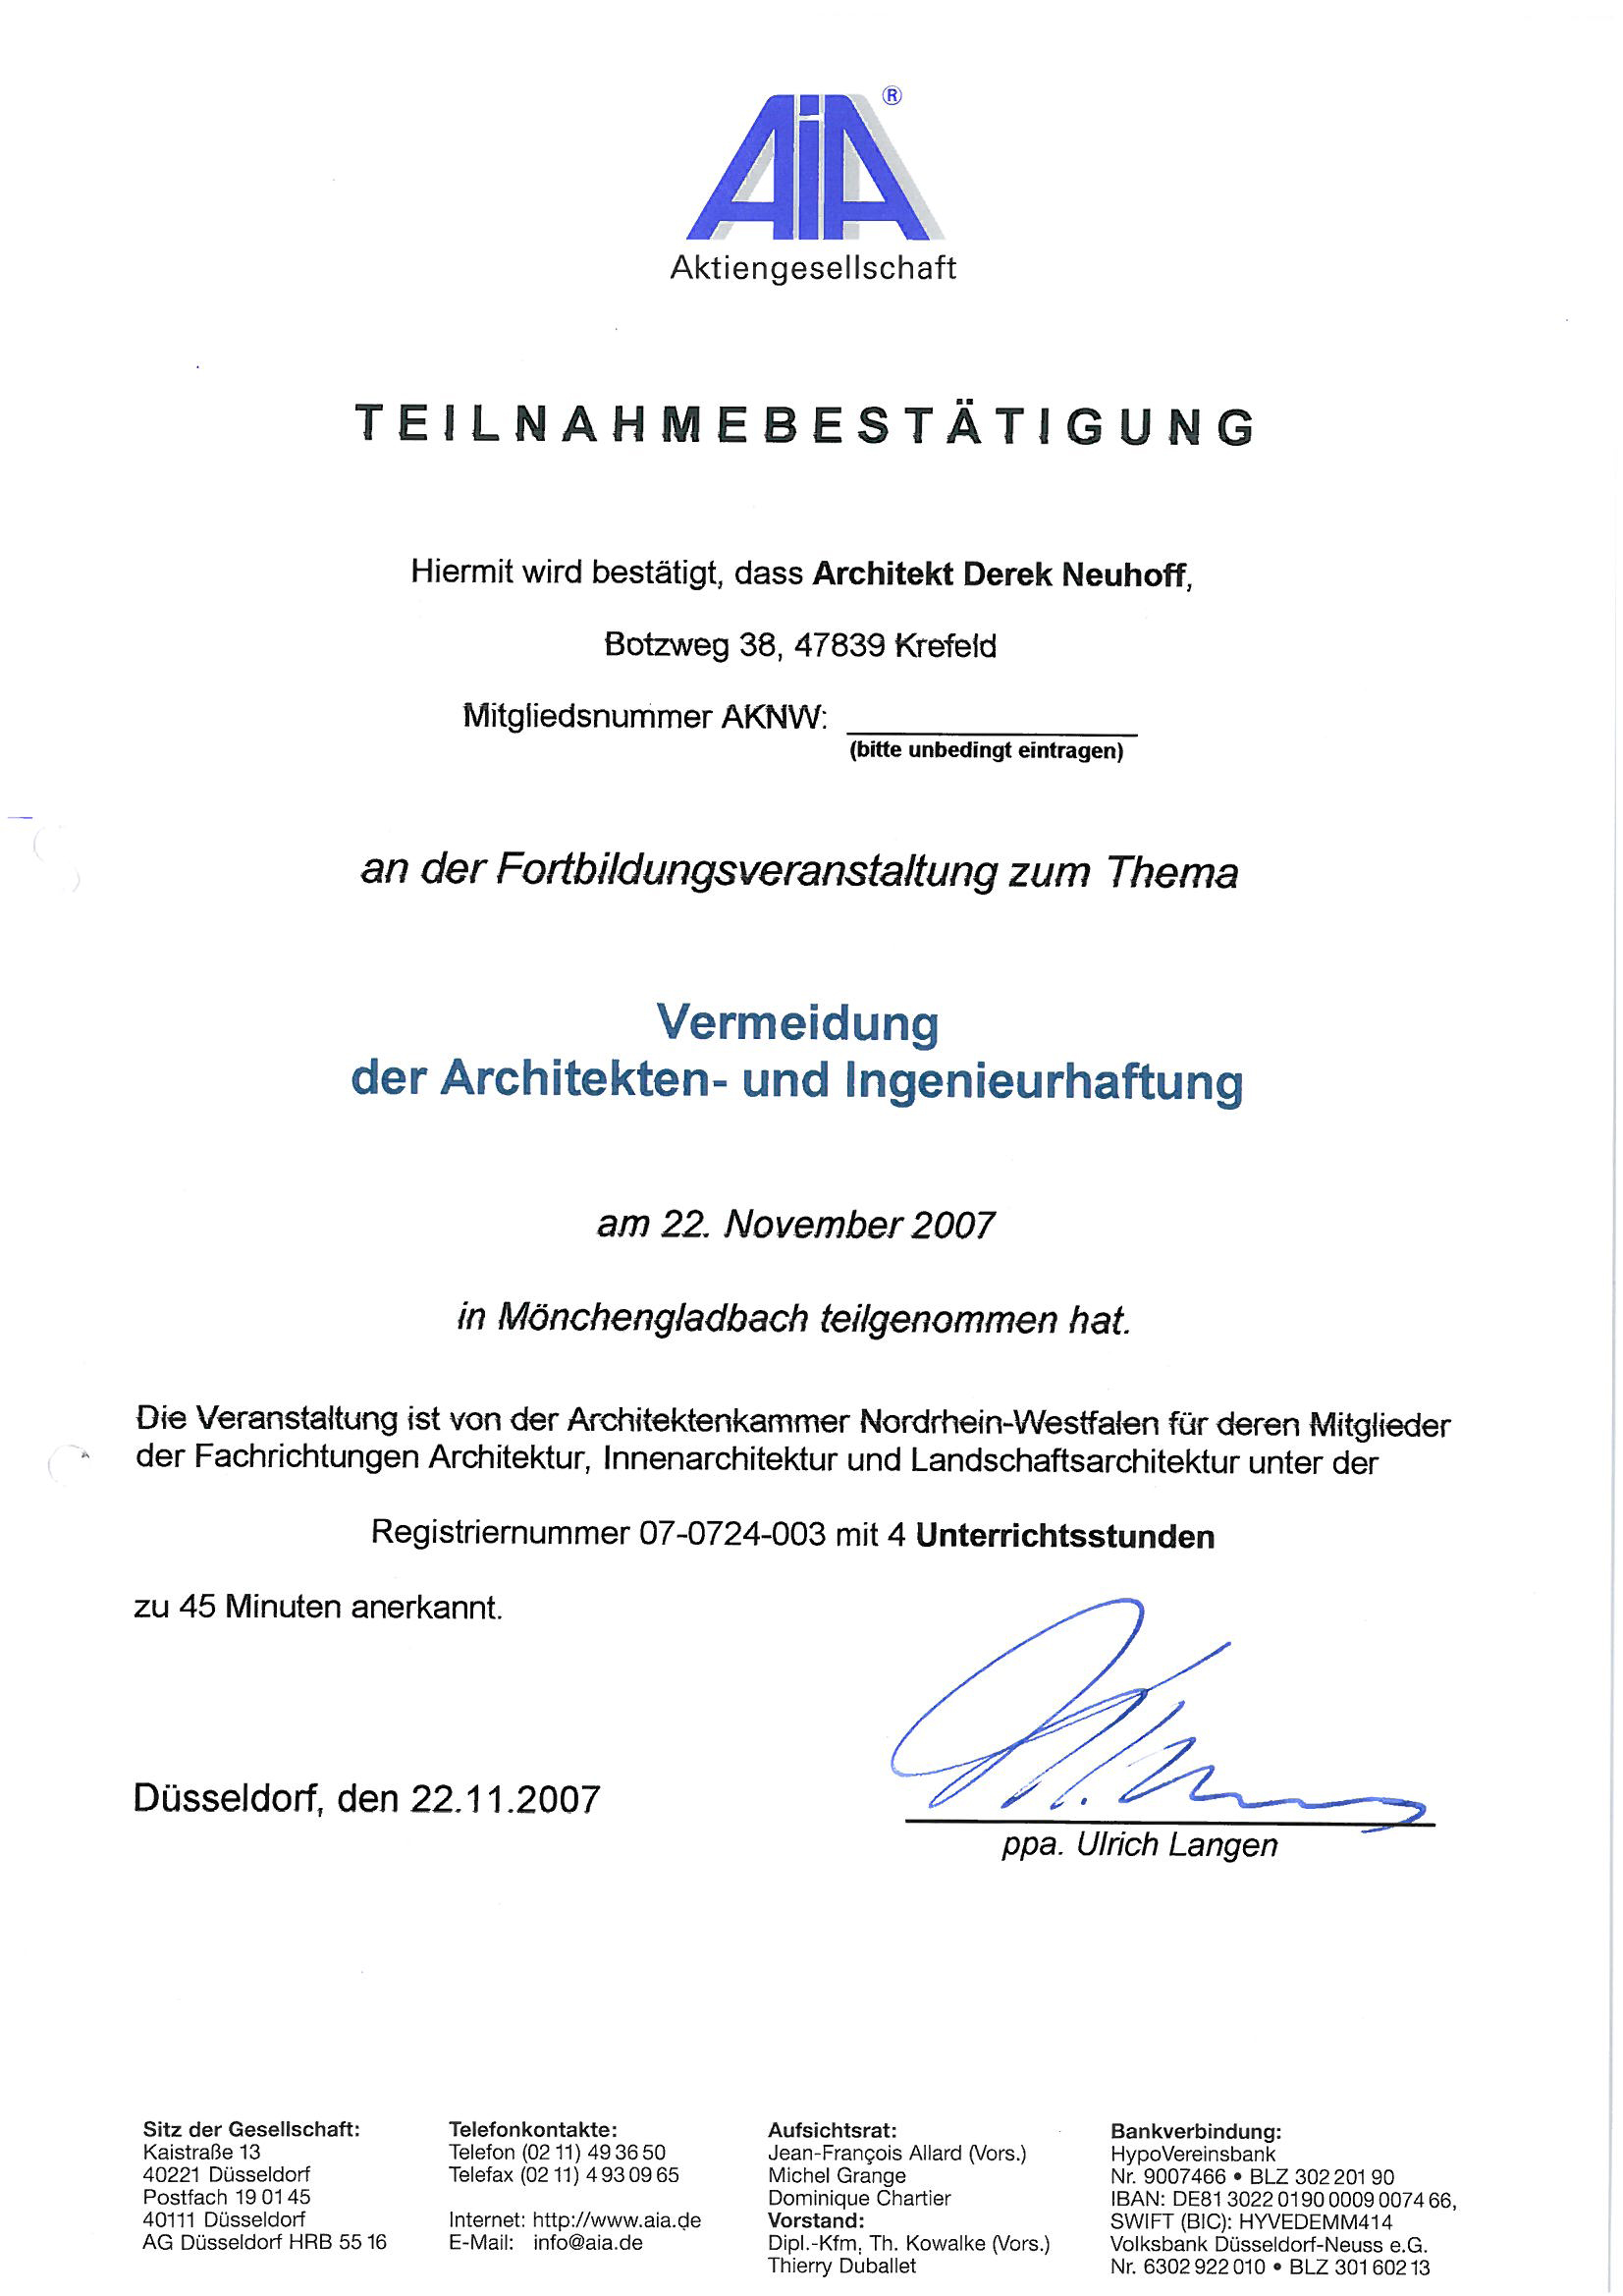 Innenarchitektur qualifikationen for Innenarchitektur krefeld